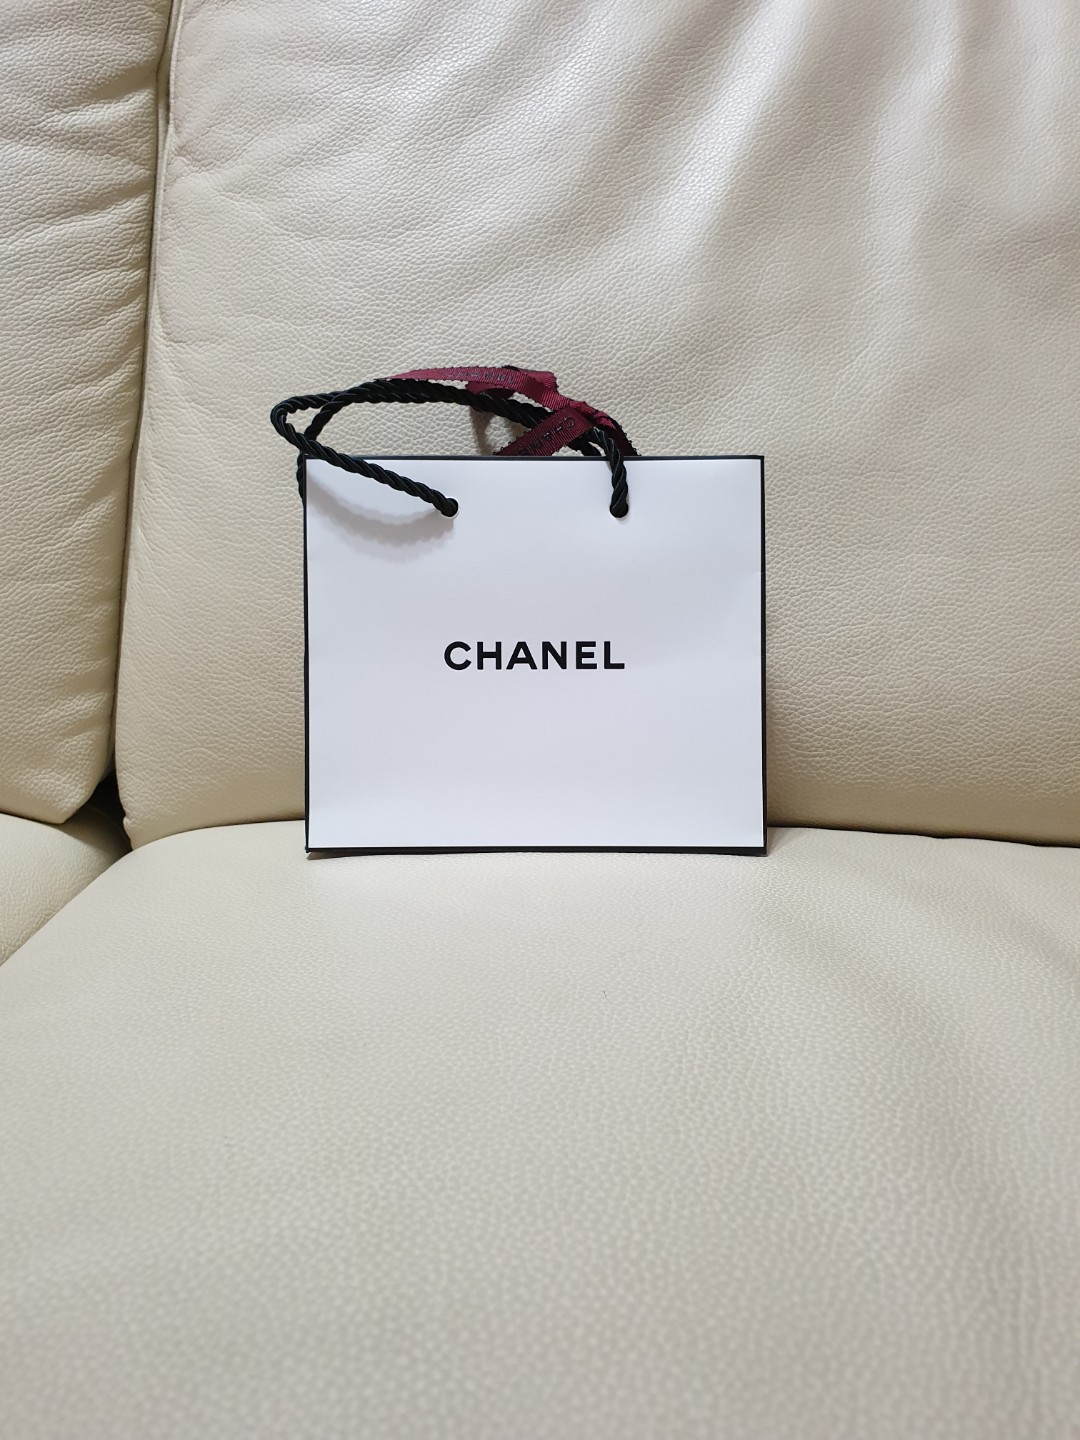 6d50214e8c5e Authentic Chanel paper bag, Luxury, Bags & Wallets, Others on Carousell